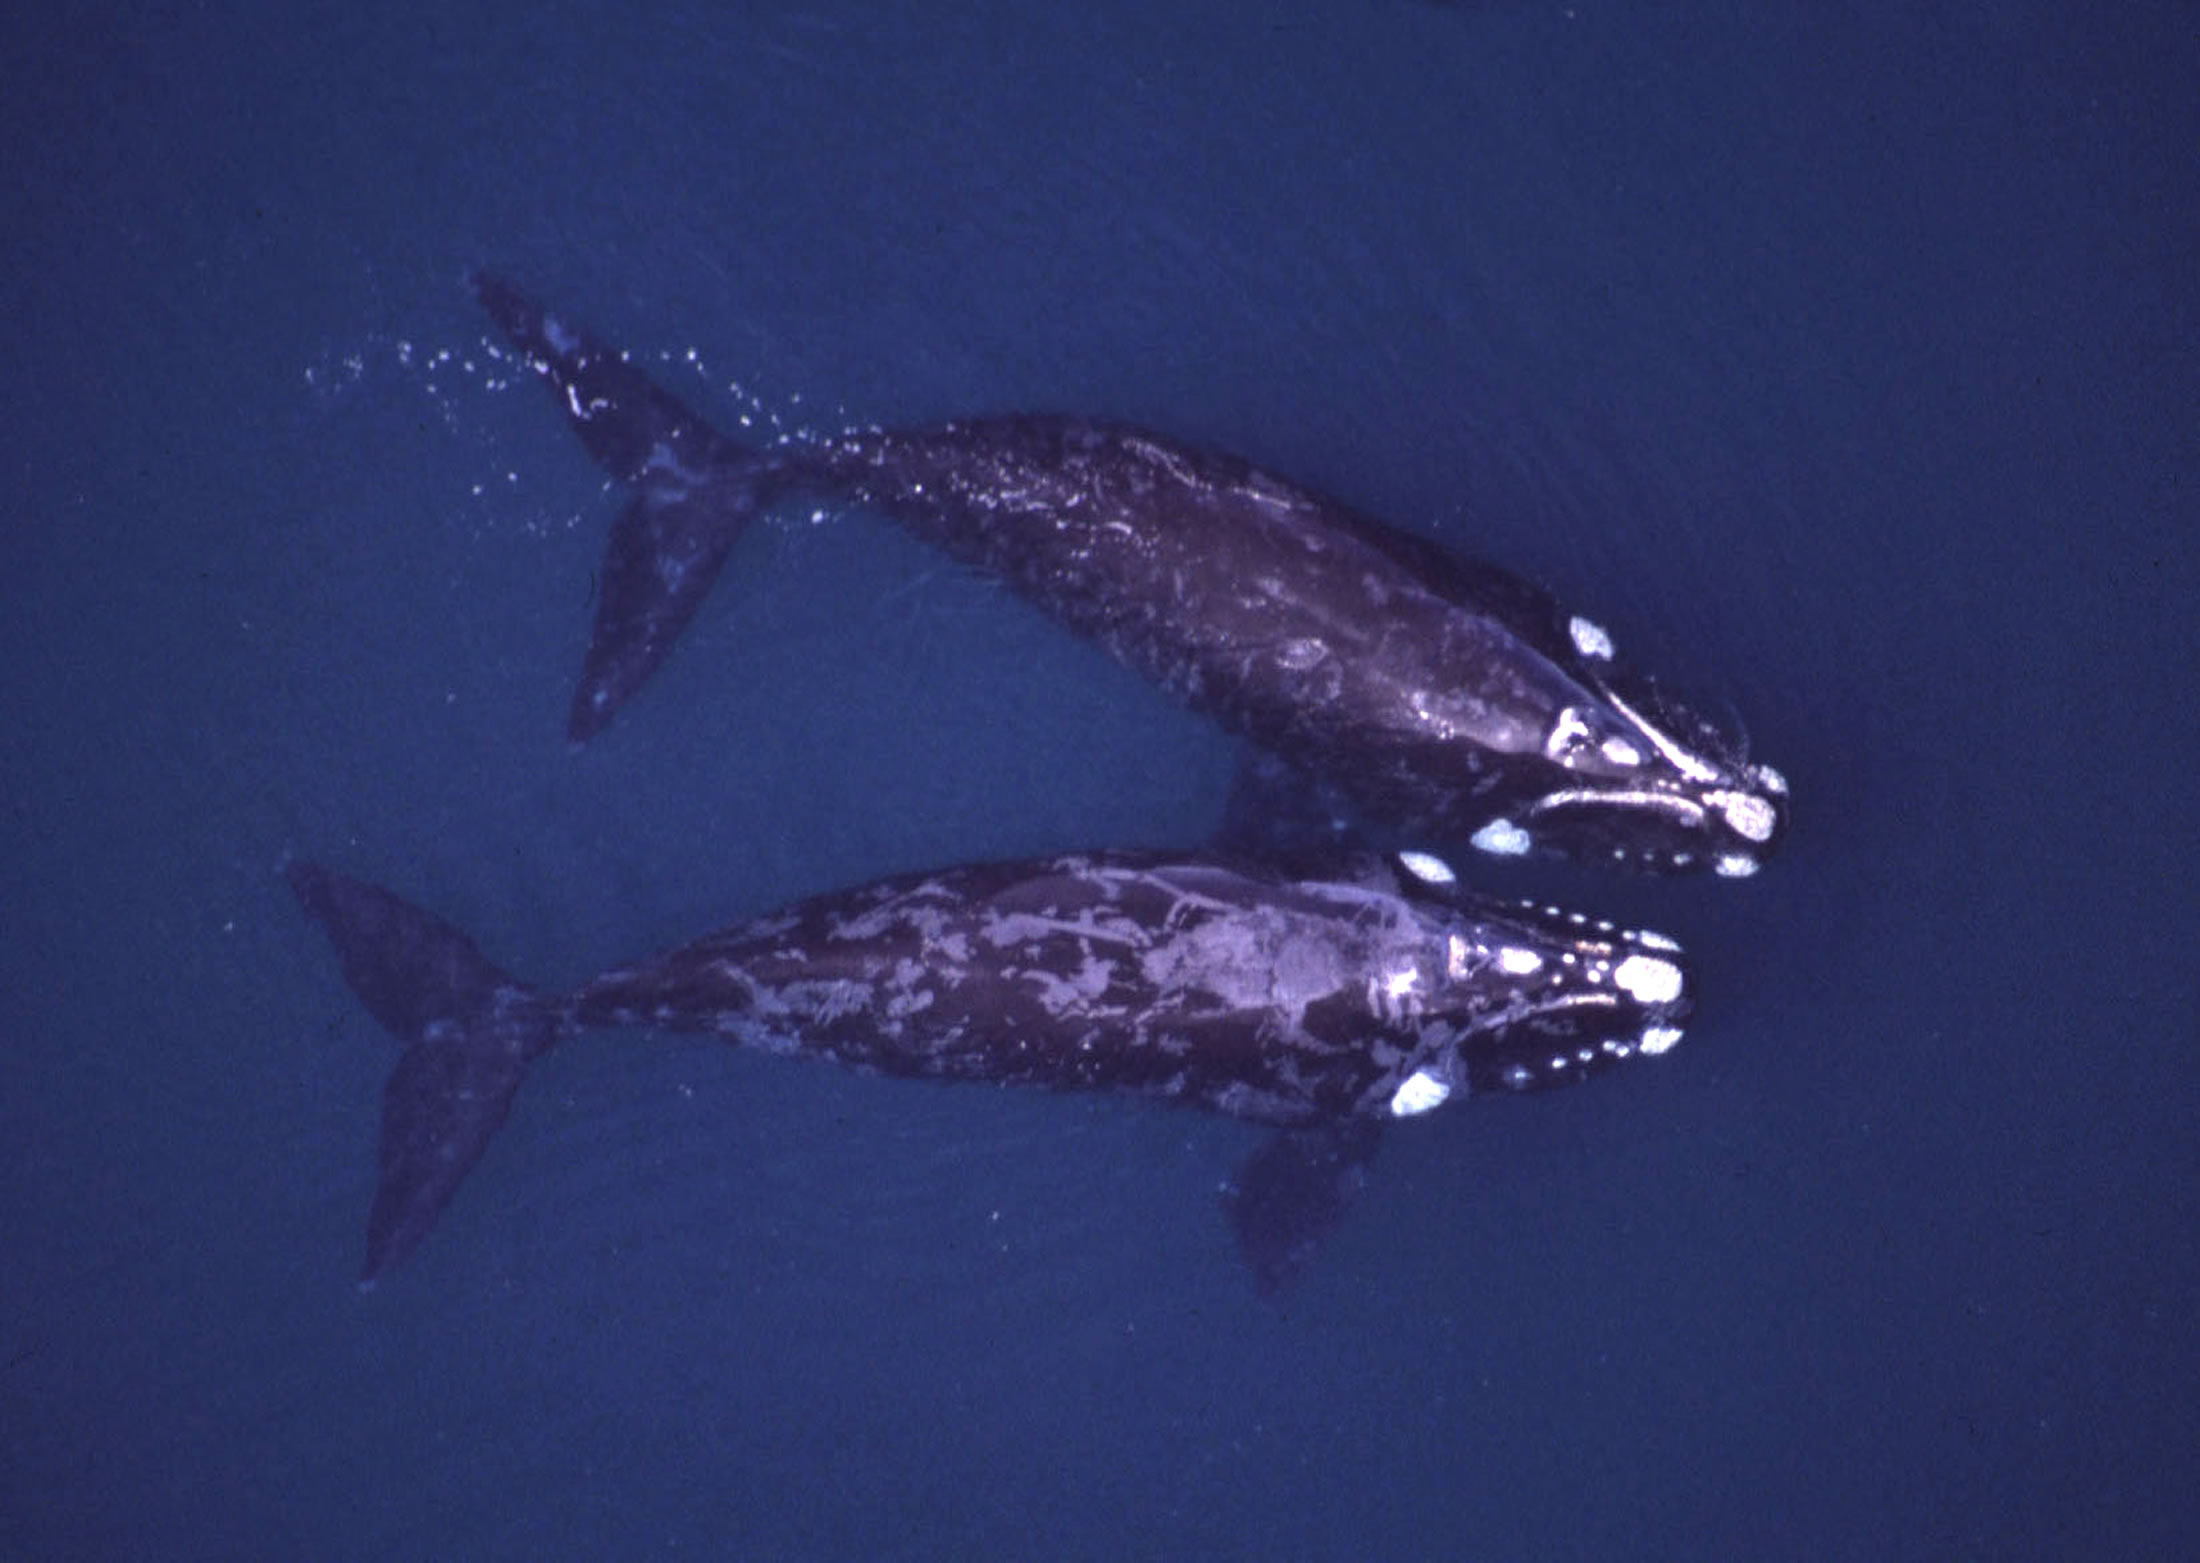 An aerial photograph of two right whales in the Atlantic Ocean offshore from Argentina shows the distinctive white markings created by small crustaceans -- known as cyamids or 'whale lice' -- that attach themselves to callus-like material on the whales' heads. University of Utah researchers learned about the evolution of different species of right whales by studying the genes of the 'whale lice' that ride the whales.